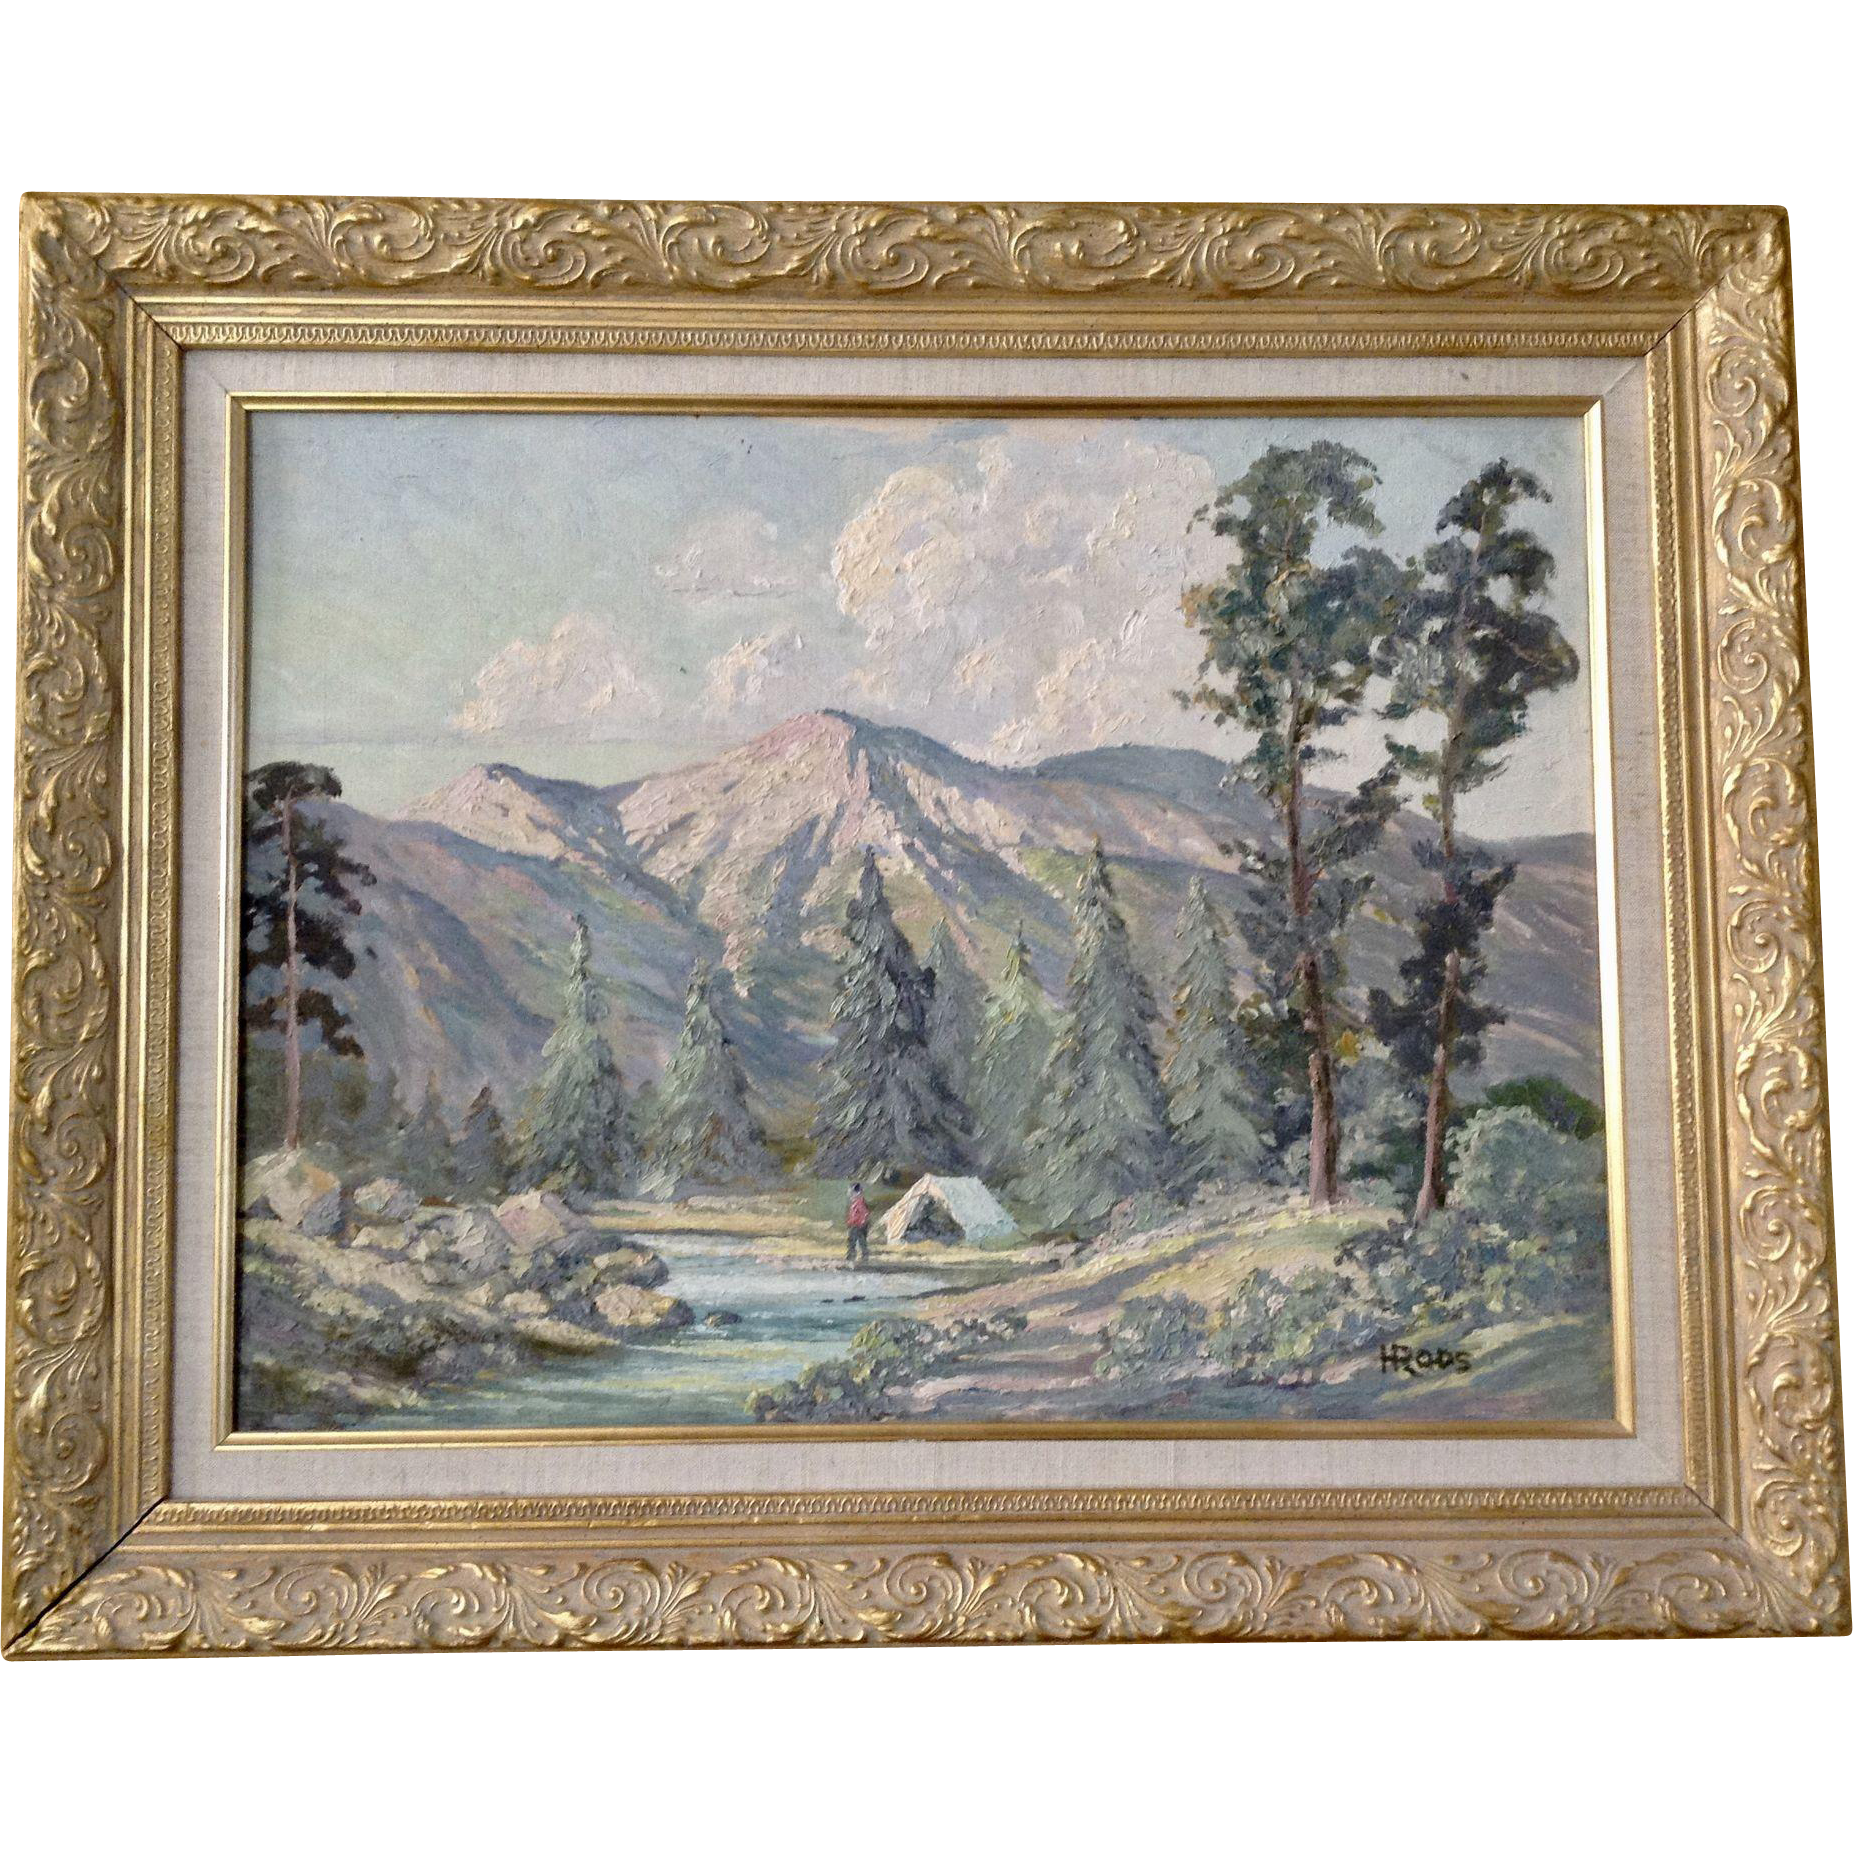 H Roos Impressionist Landscape Oil Painting Camping In Mountain Valley Signed By Artist Oil Painting Landscape Painting Impressionist Landscape